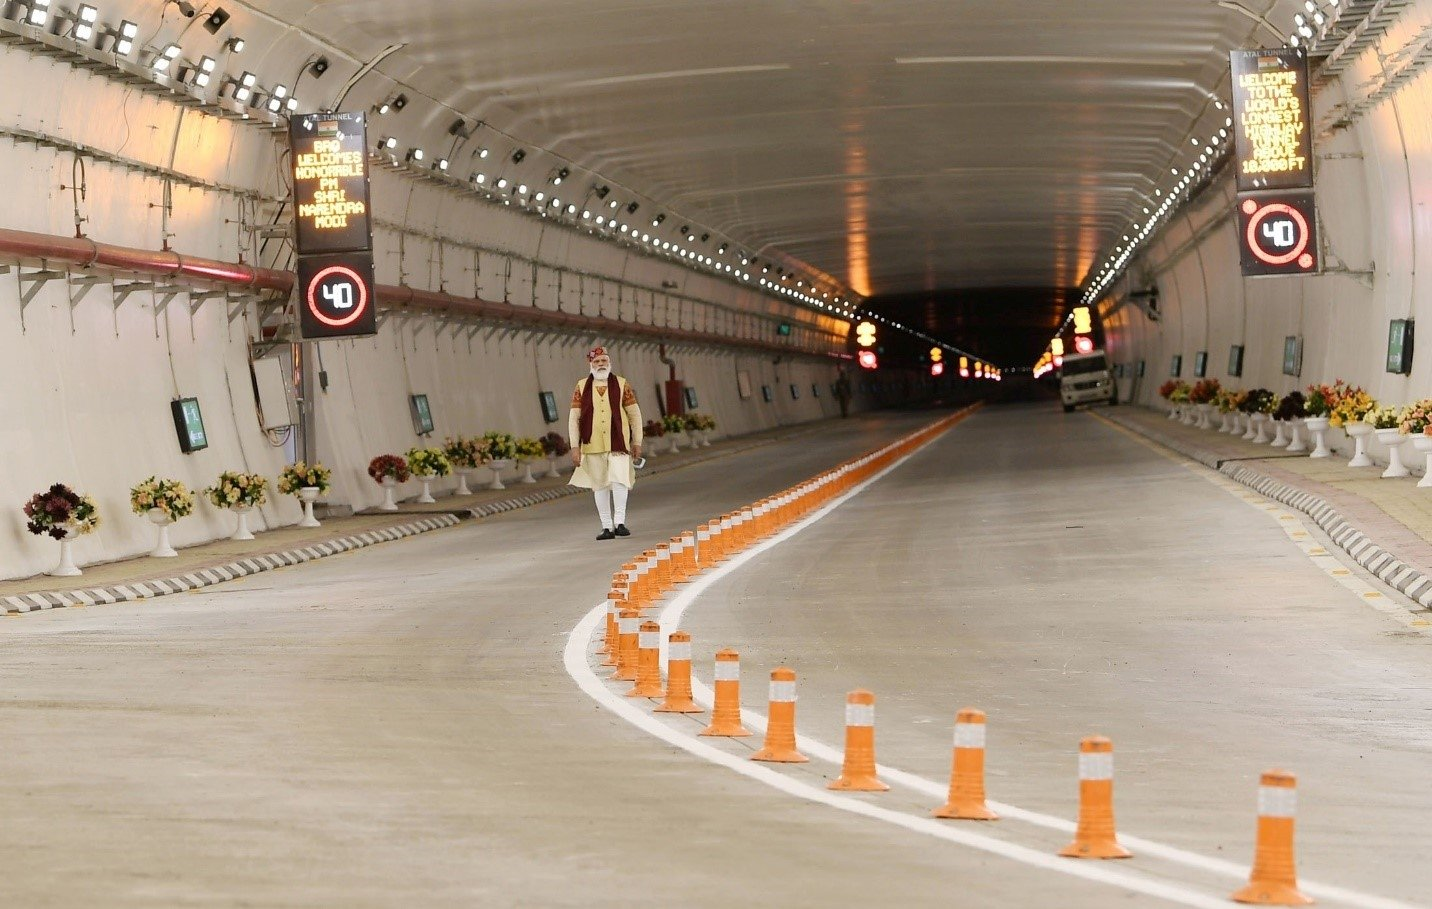 India's Prime Minister Narendra Modi is seen in Atal Tunnel, Manali, Himachal Pradesh, India, Oct. 3, 2020. (AA Photo)